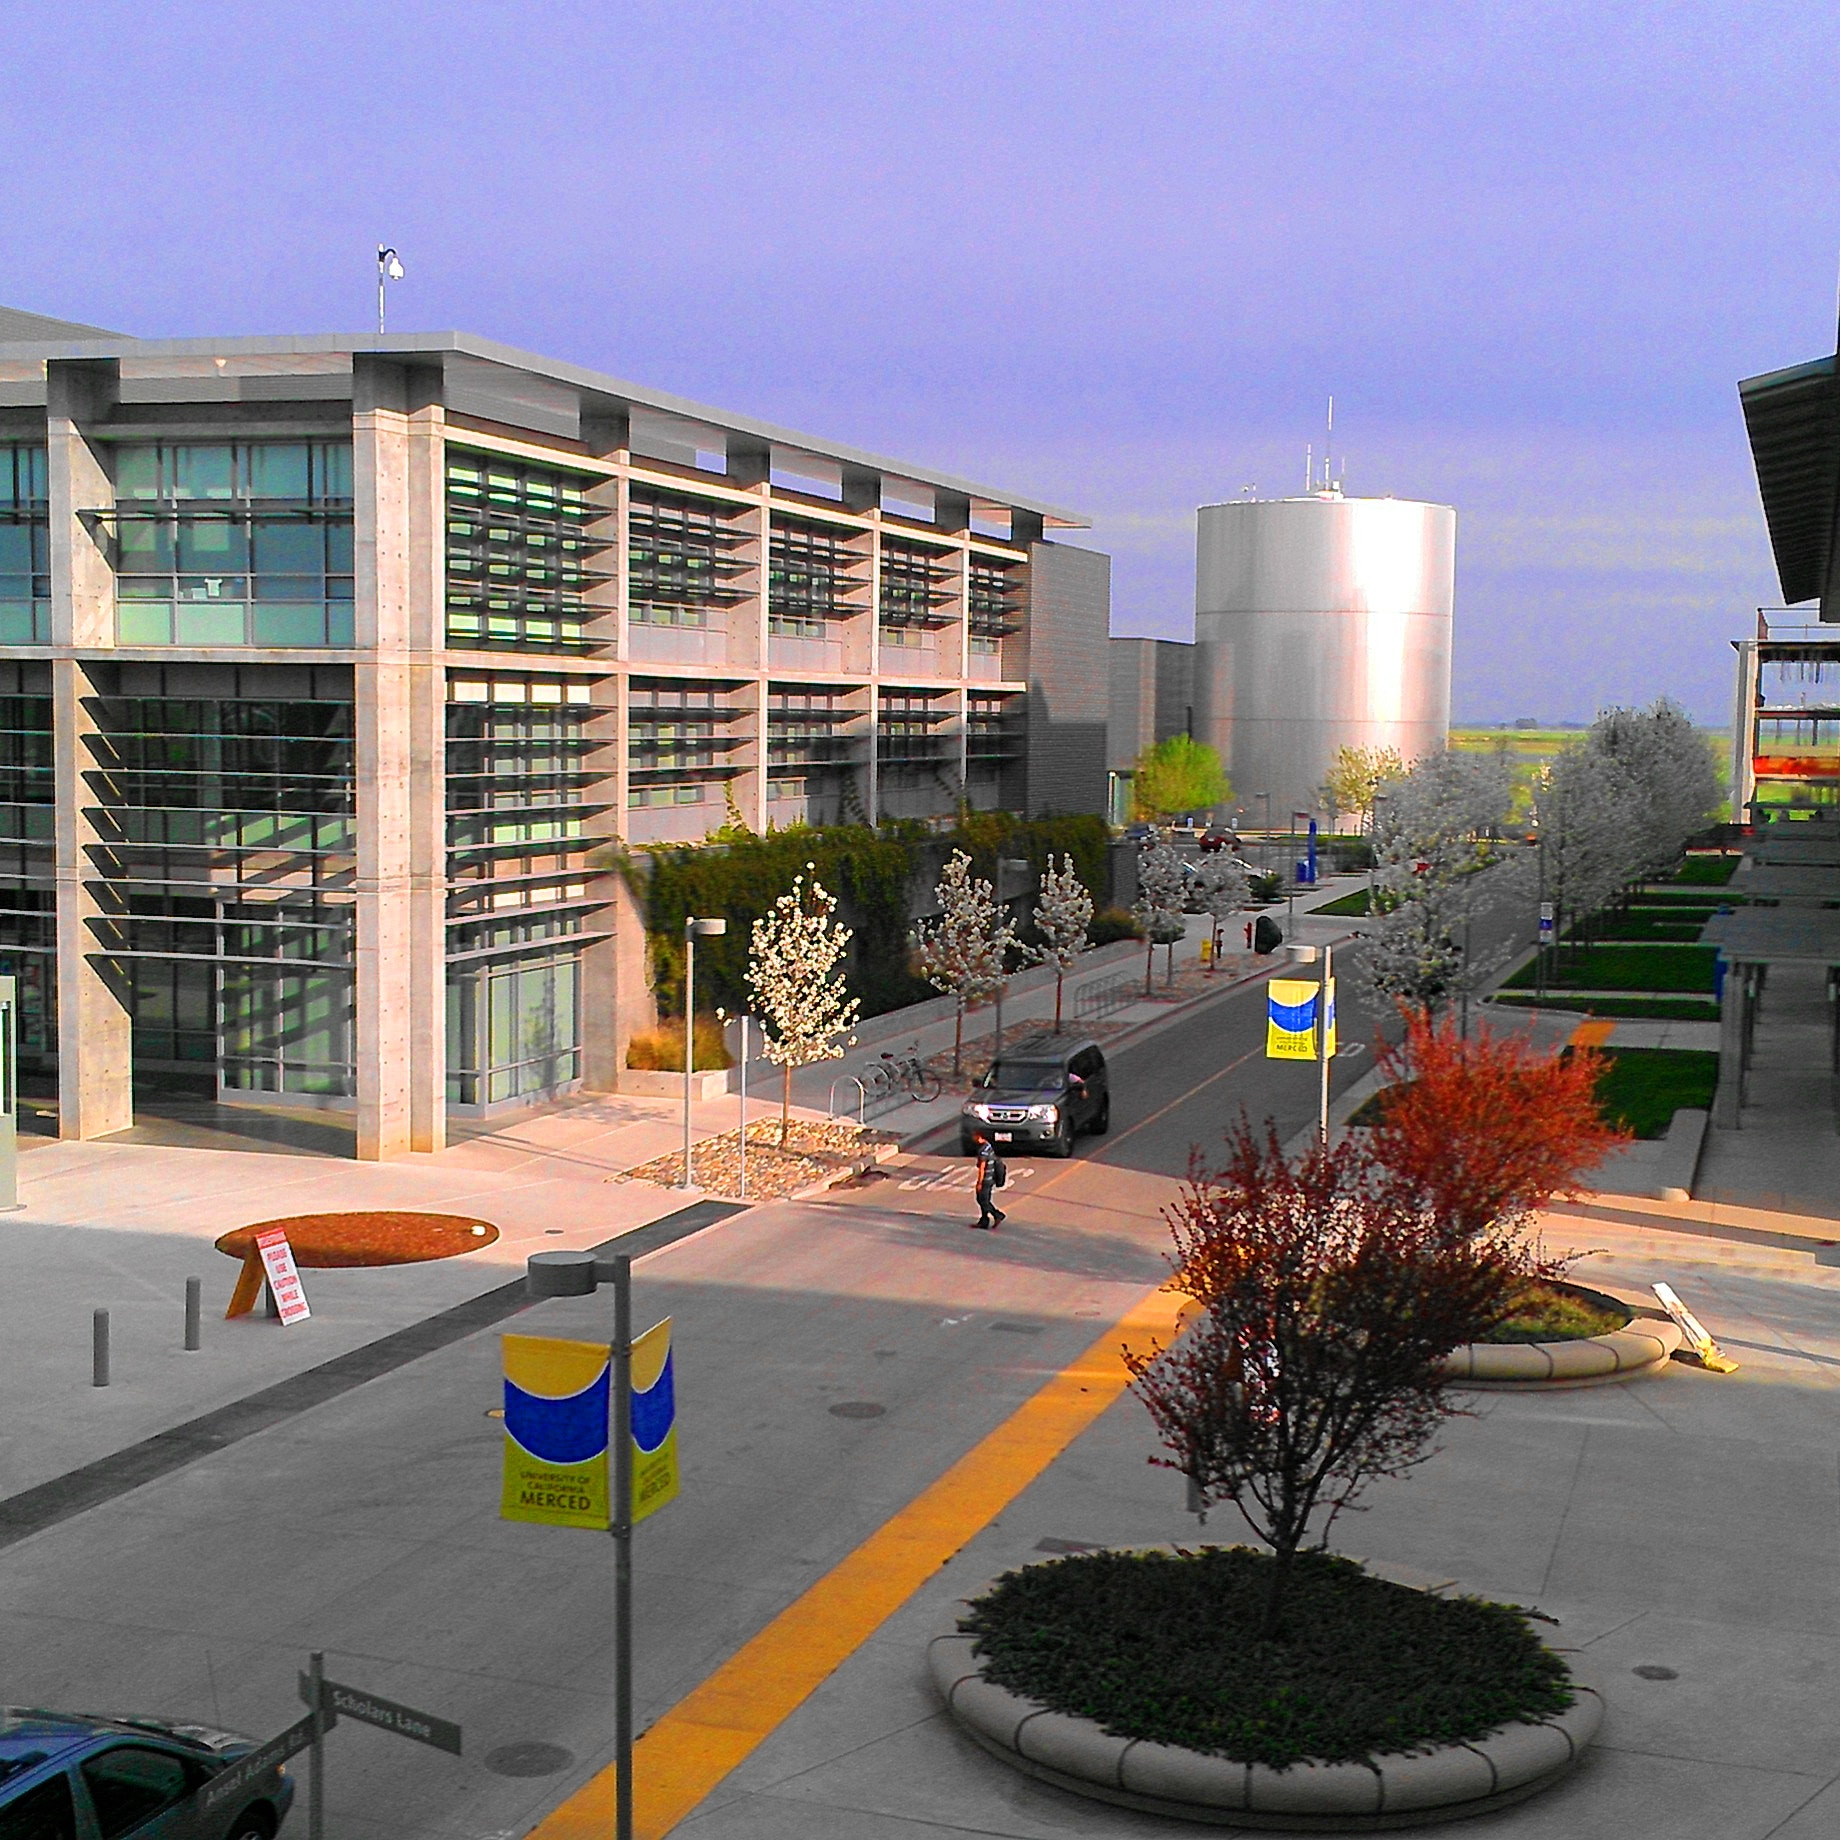 University of California Merced - Admission Requirements, SAT, ACT, GPA and  chance of acceptance